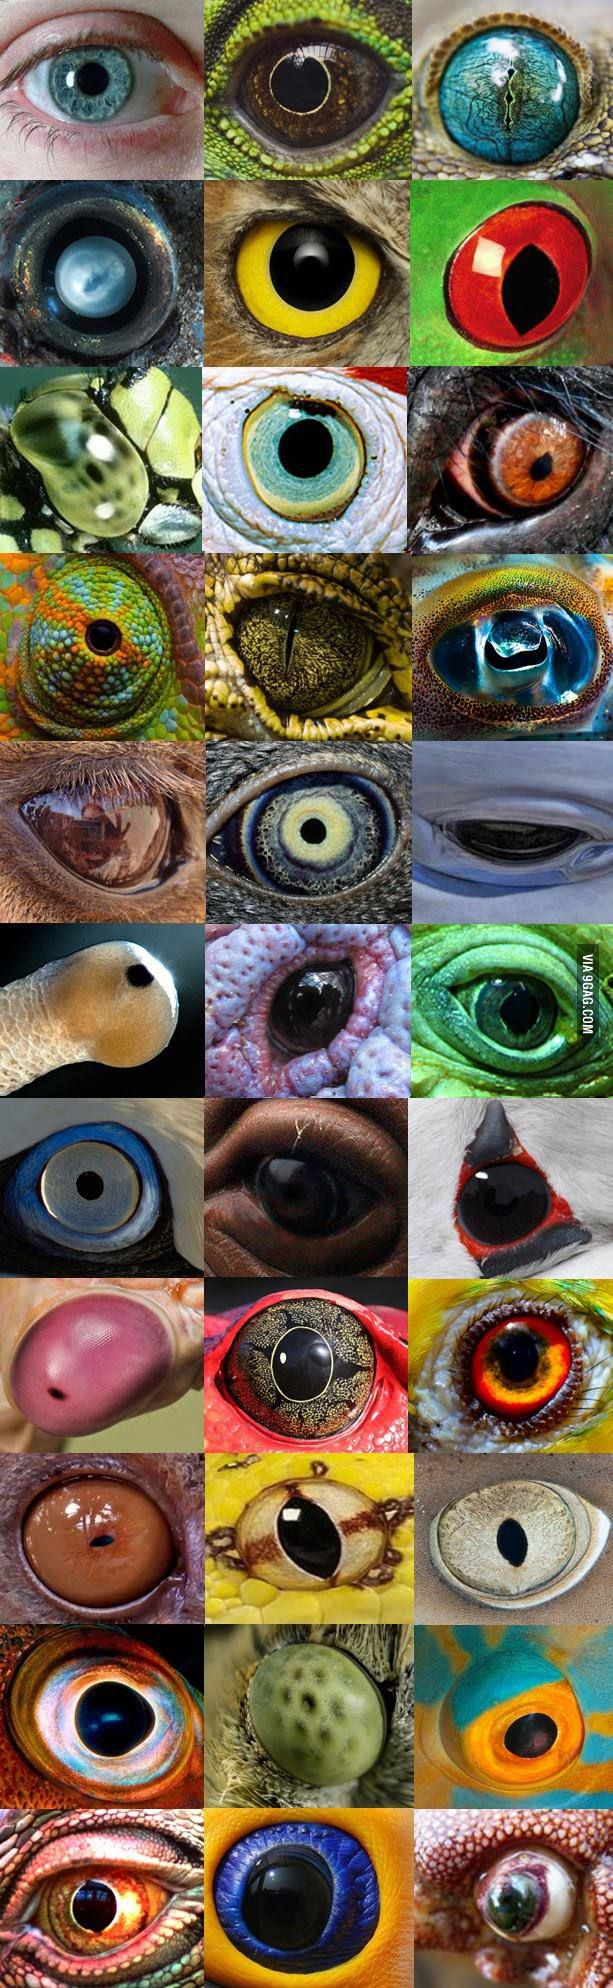 Nature is watching you!